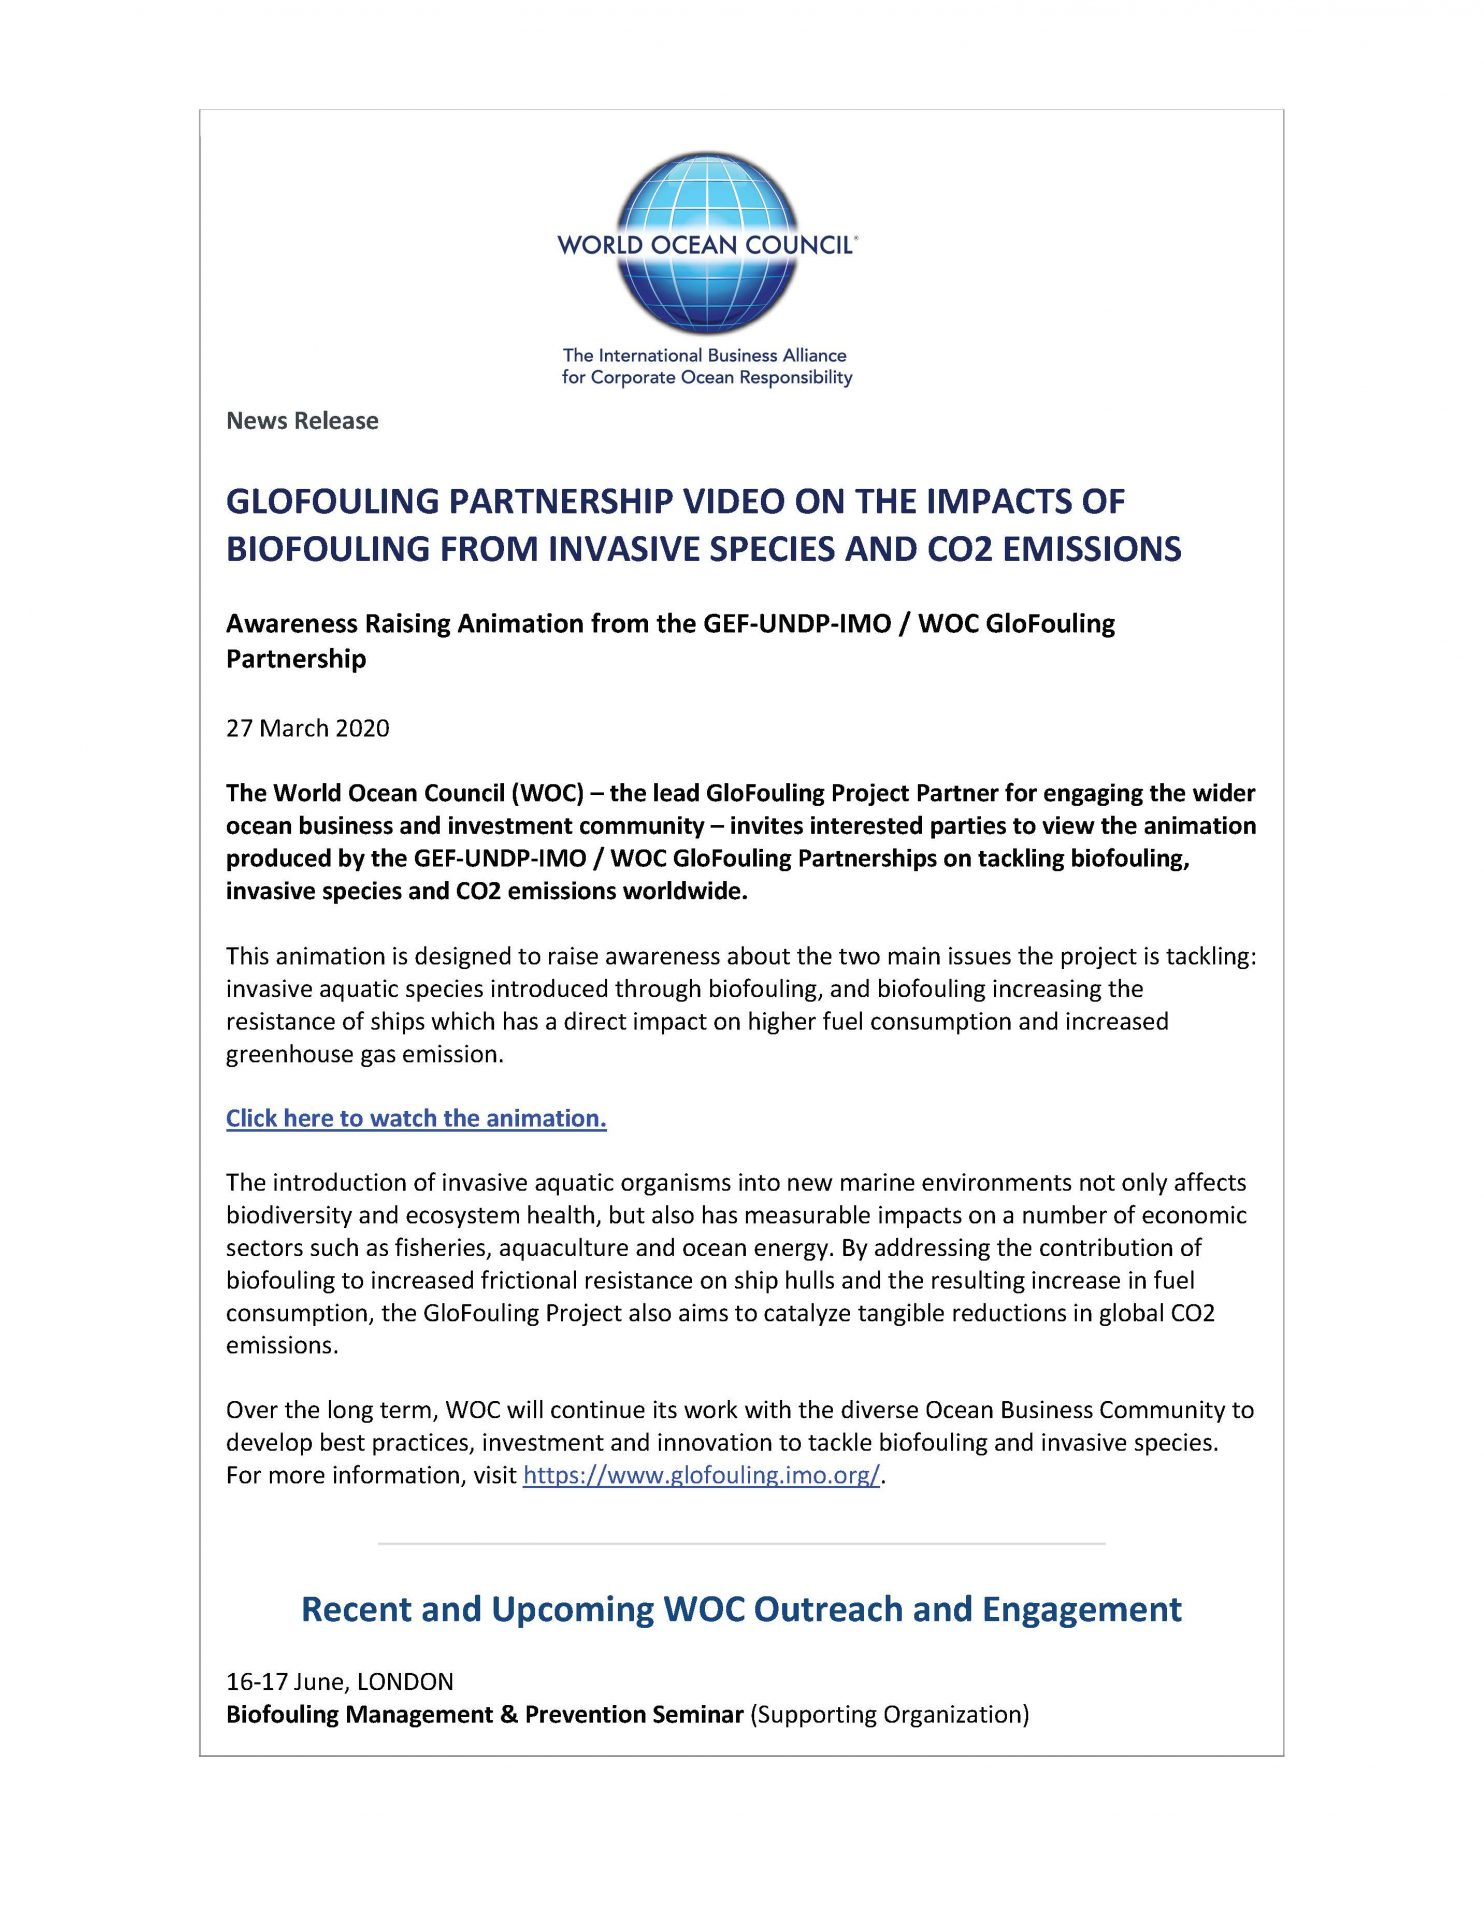 GloFouling Partnership Video on the Impacts of Biofouling from Invasive Species and CO2 Emissions - 27 March 2020